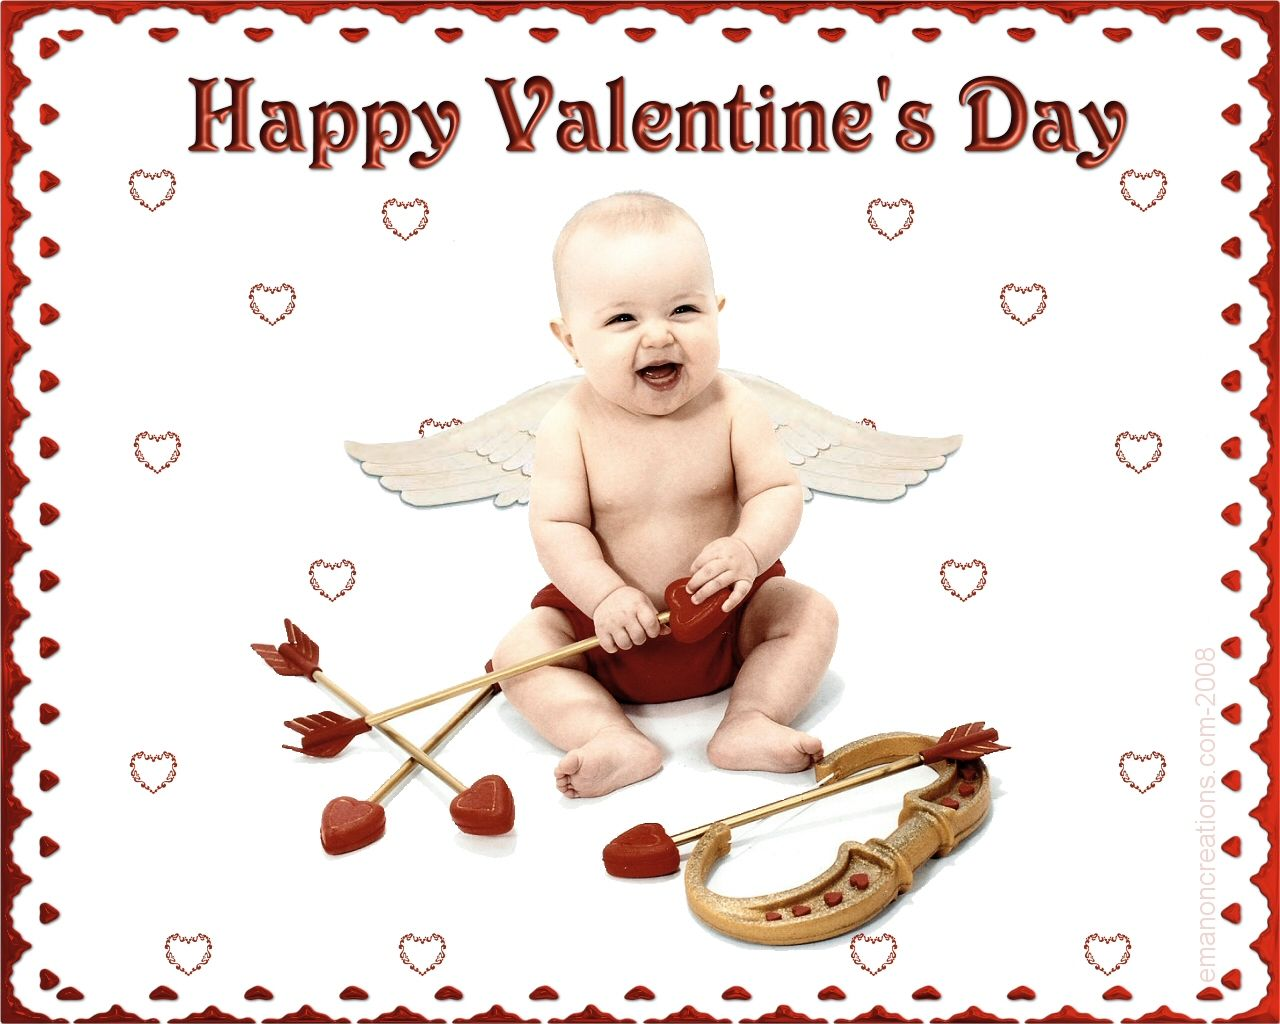 Pin by Denise Harris on valentines Happy valentines day funny 1280x1024